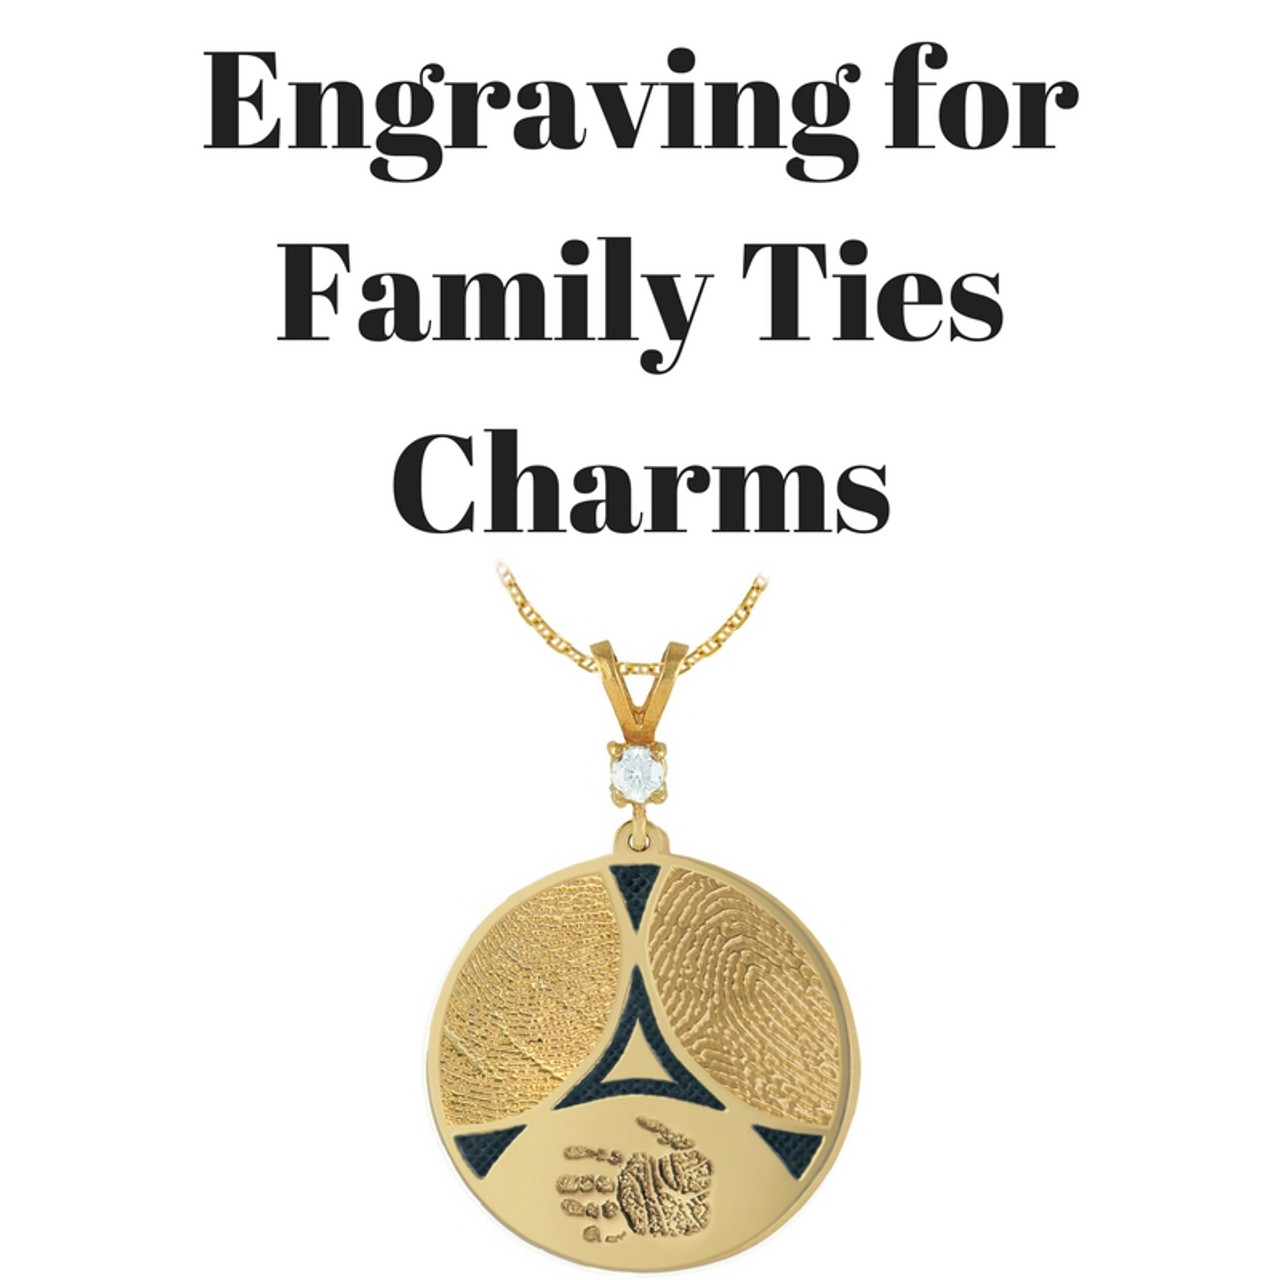 Engraving for Family Ties Charms